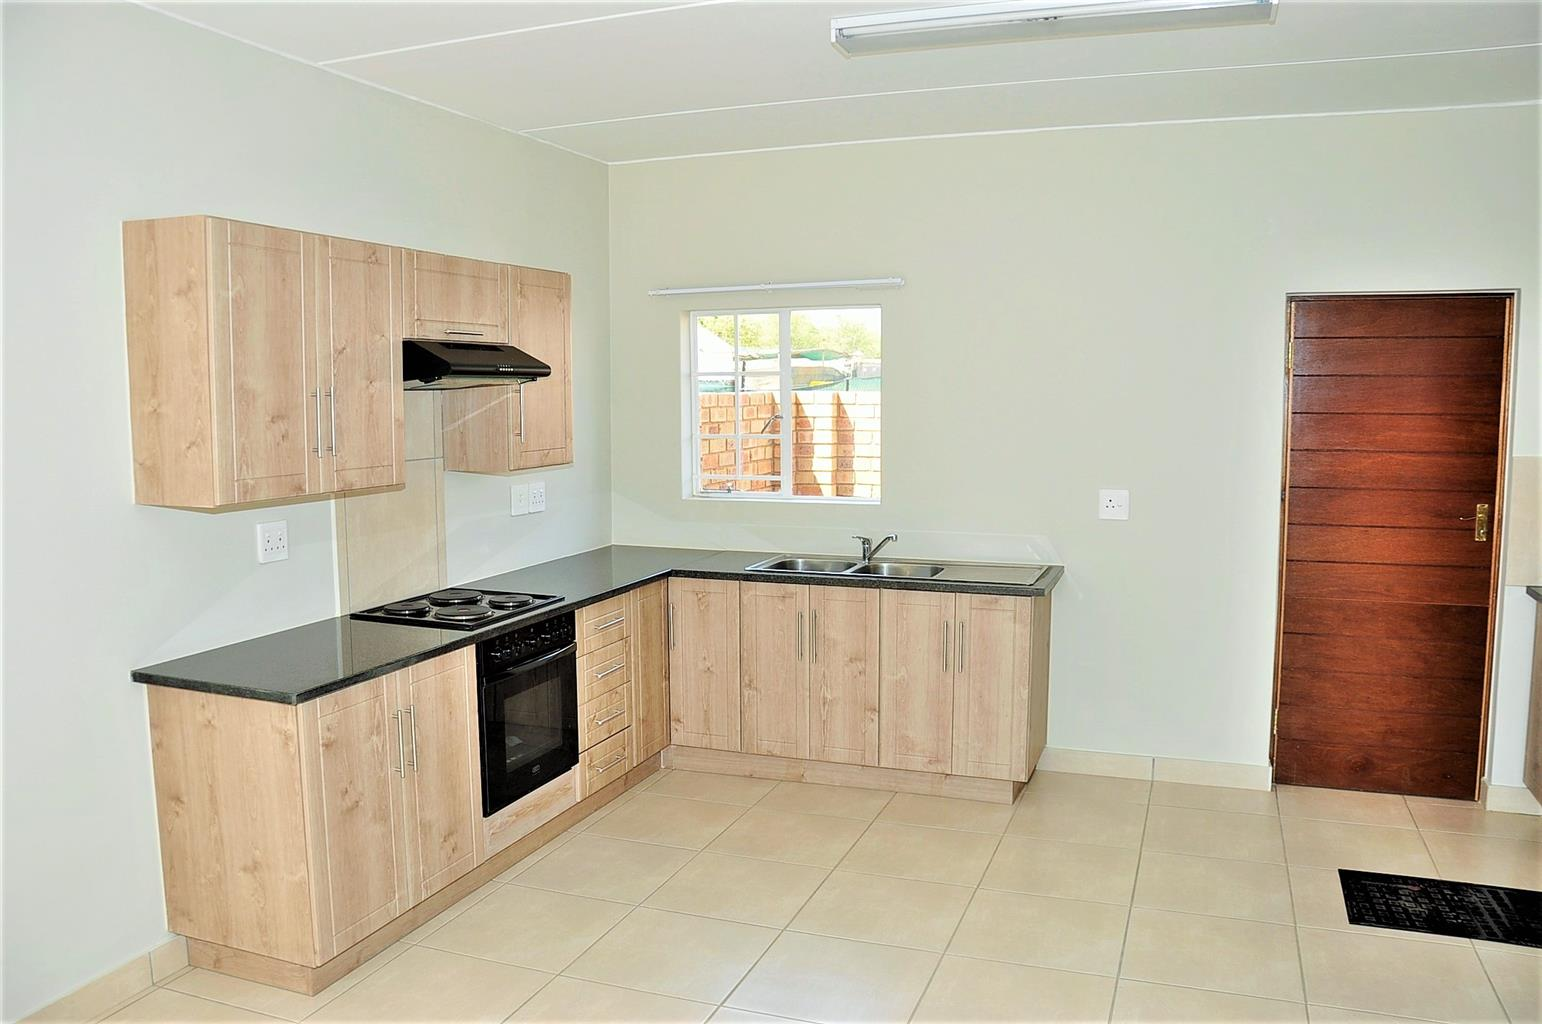 To Let: Unfurnished  3 Bedroom House in Hazeldean.